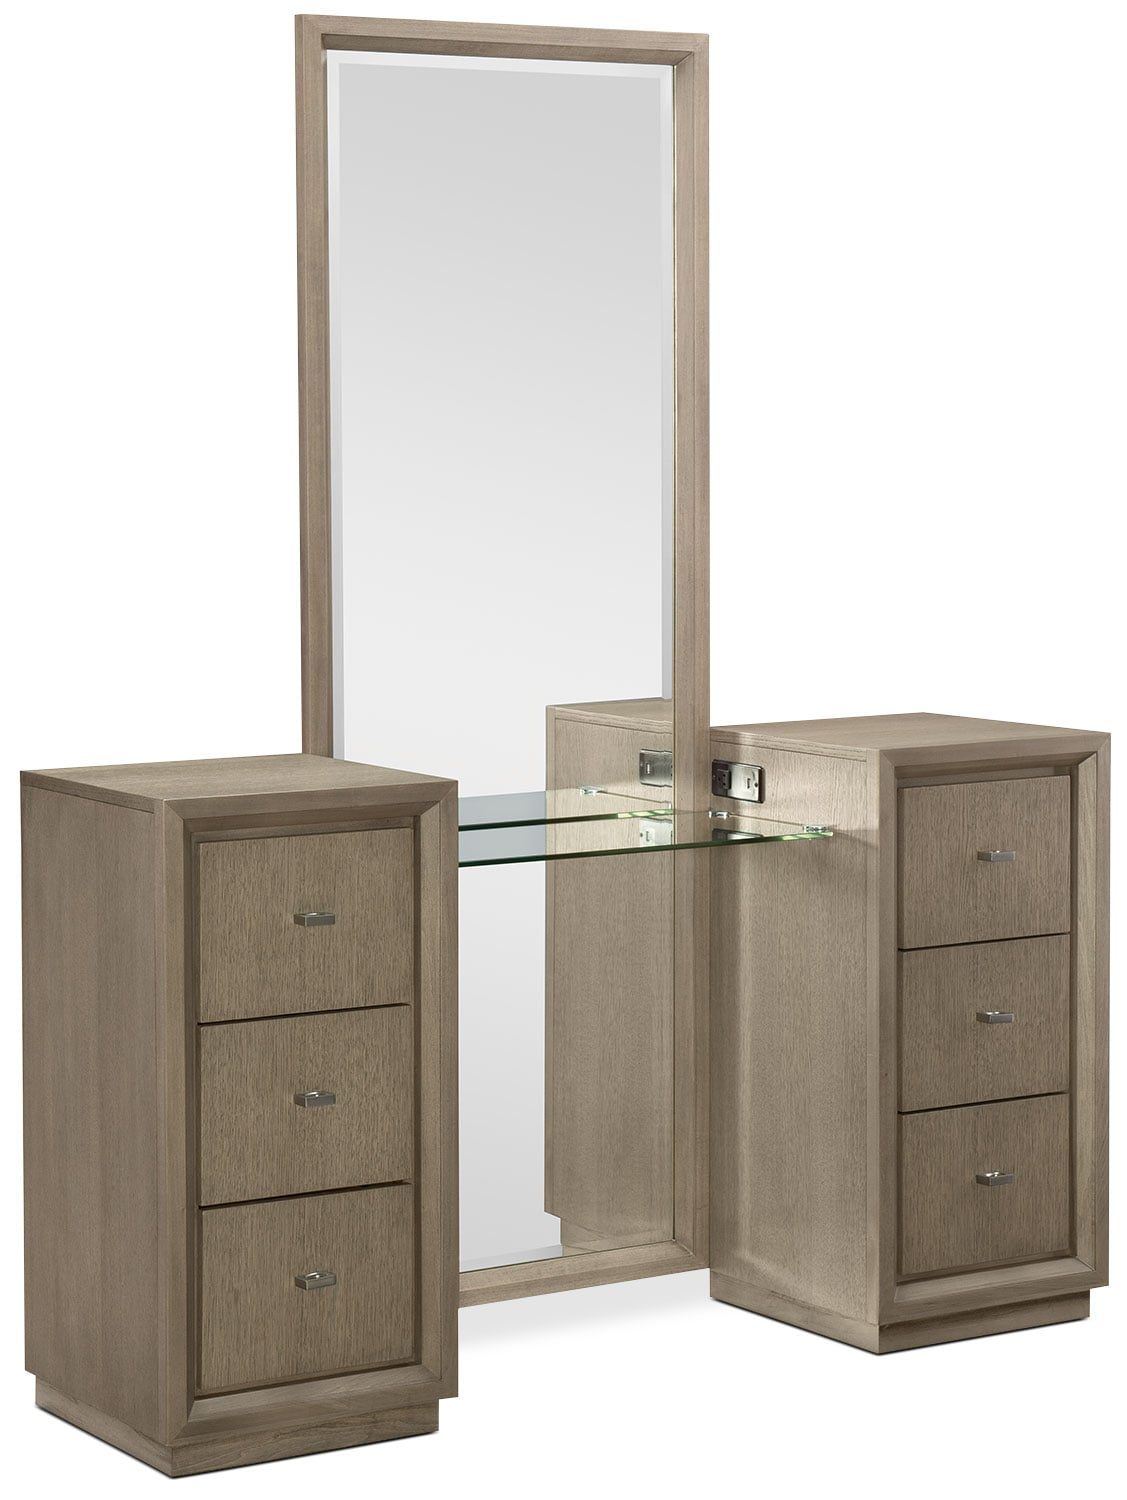 Bedroom Furniture - Rachael Ray Highline 2-Piece Vanity Set - Greige